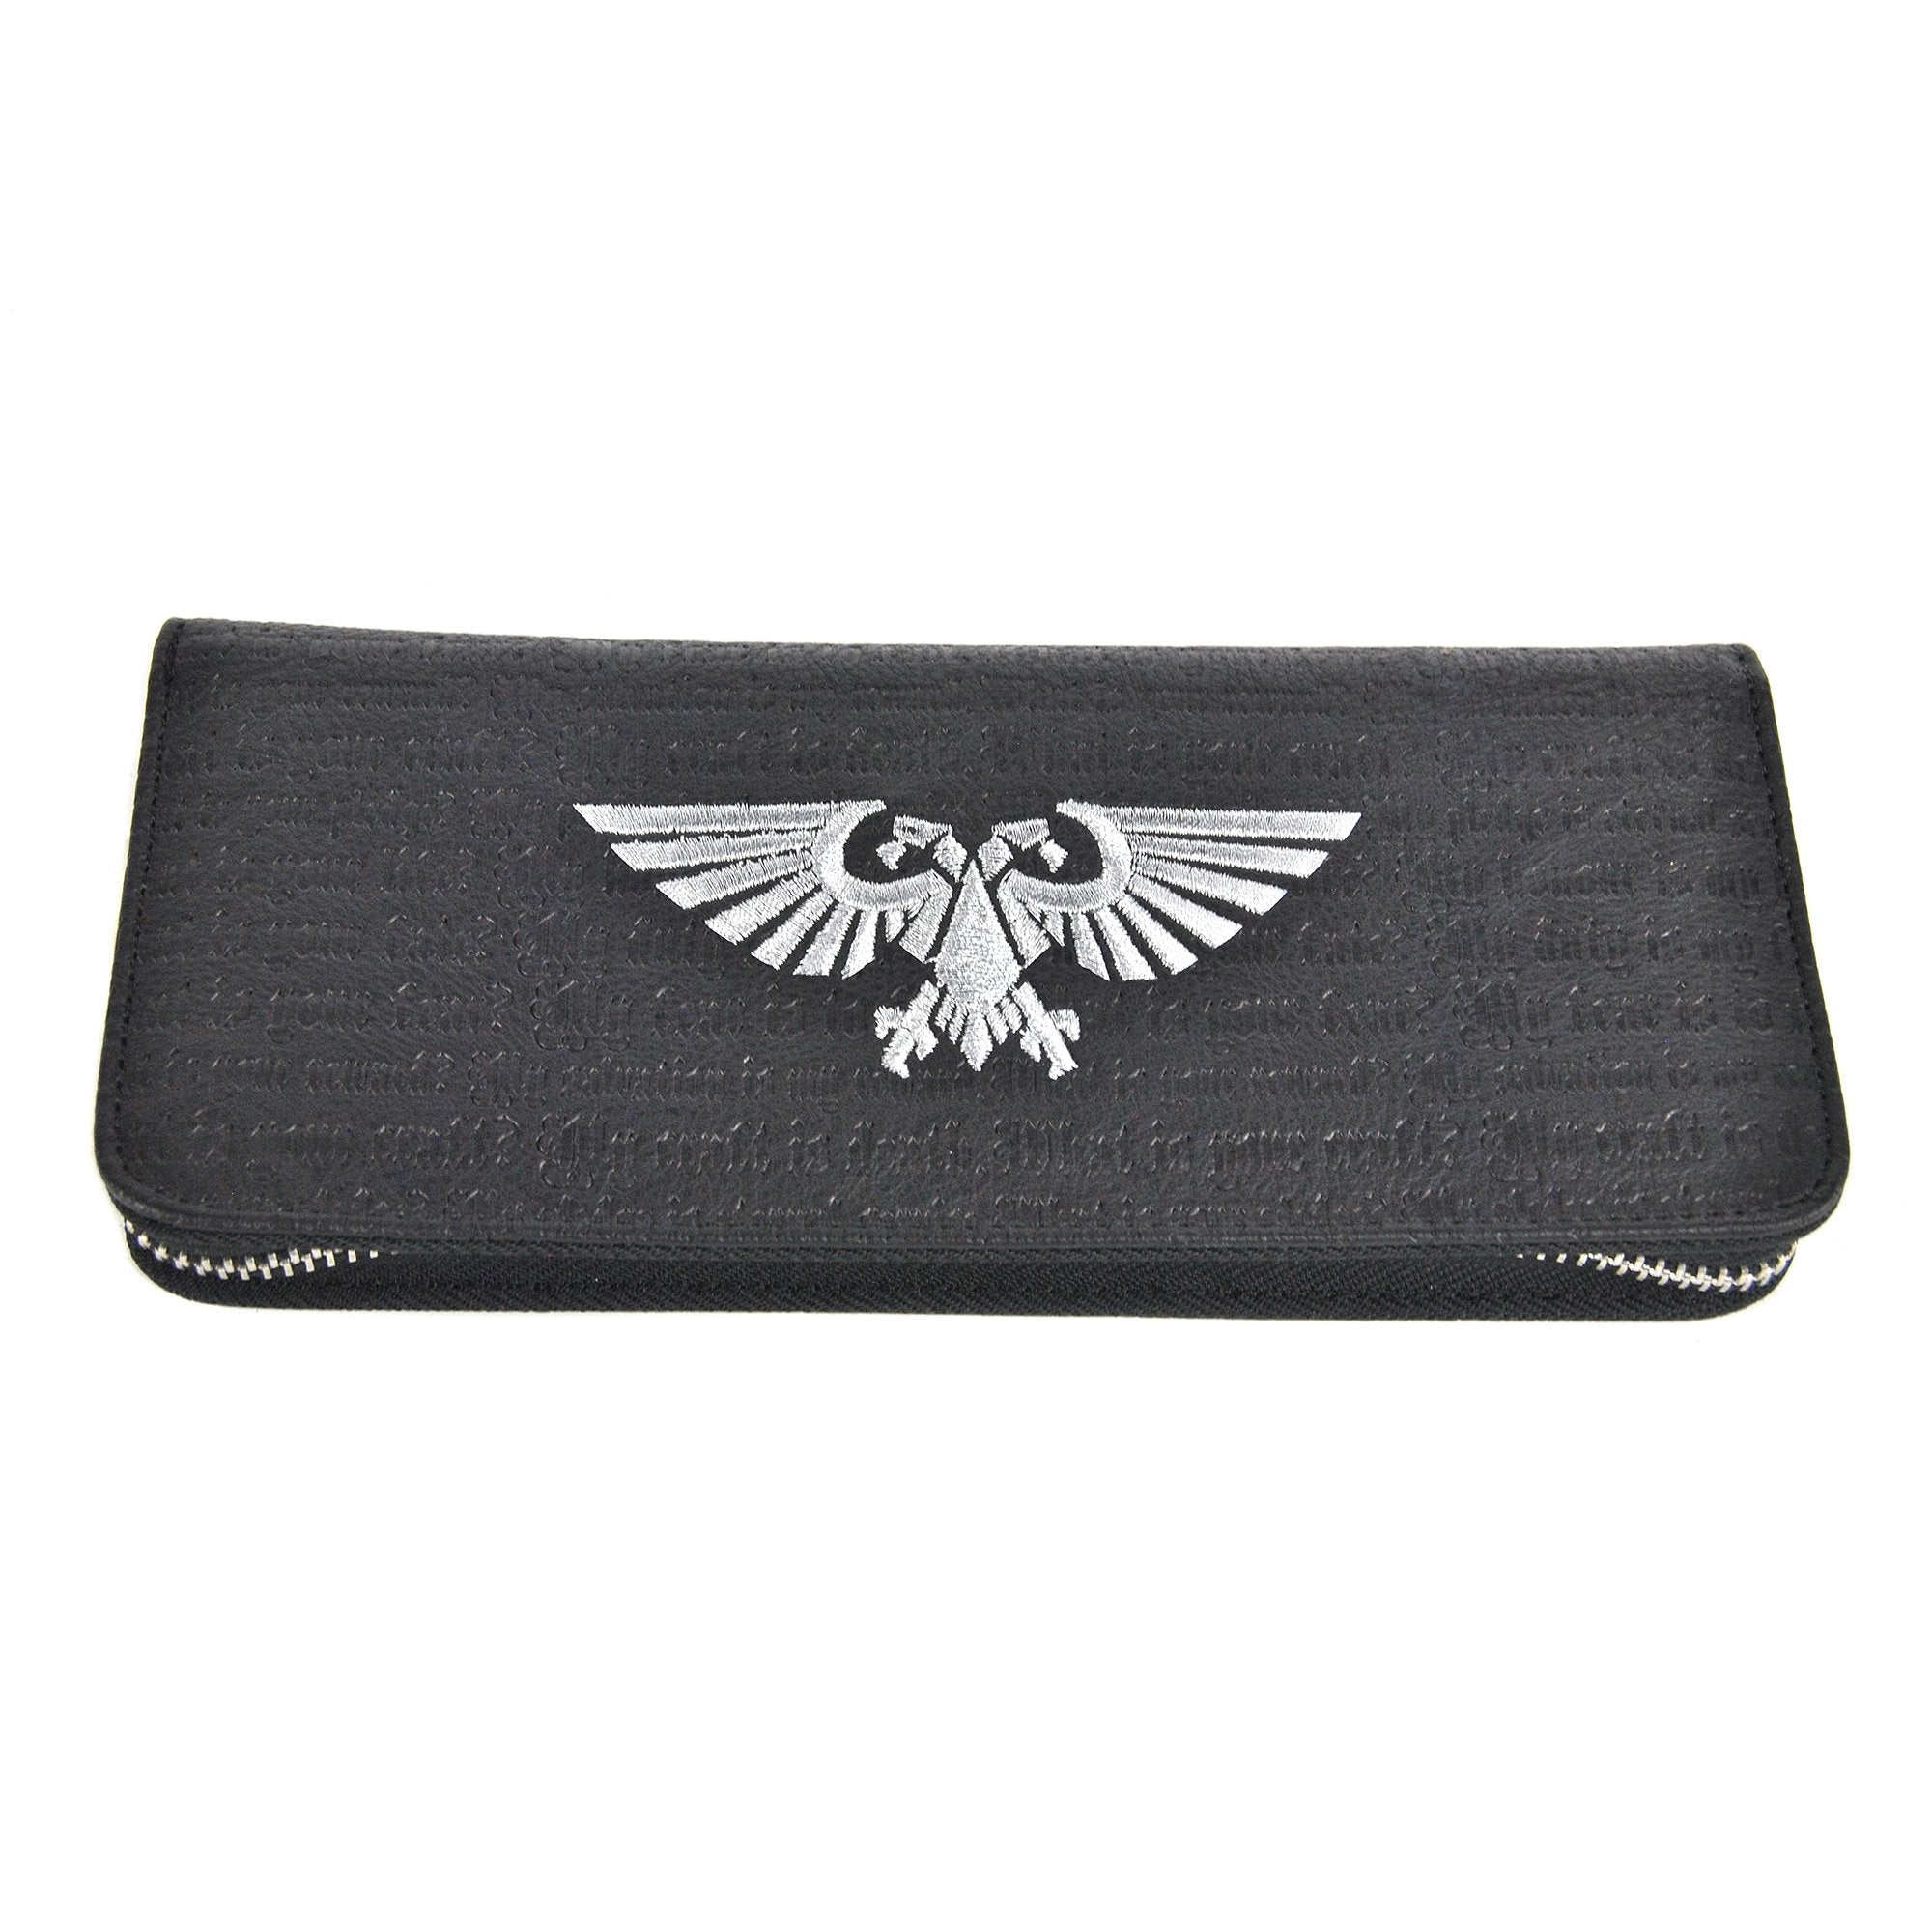 Warhammer 40,000 Pencil Case - Pledge - Half Moon Bay US